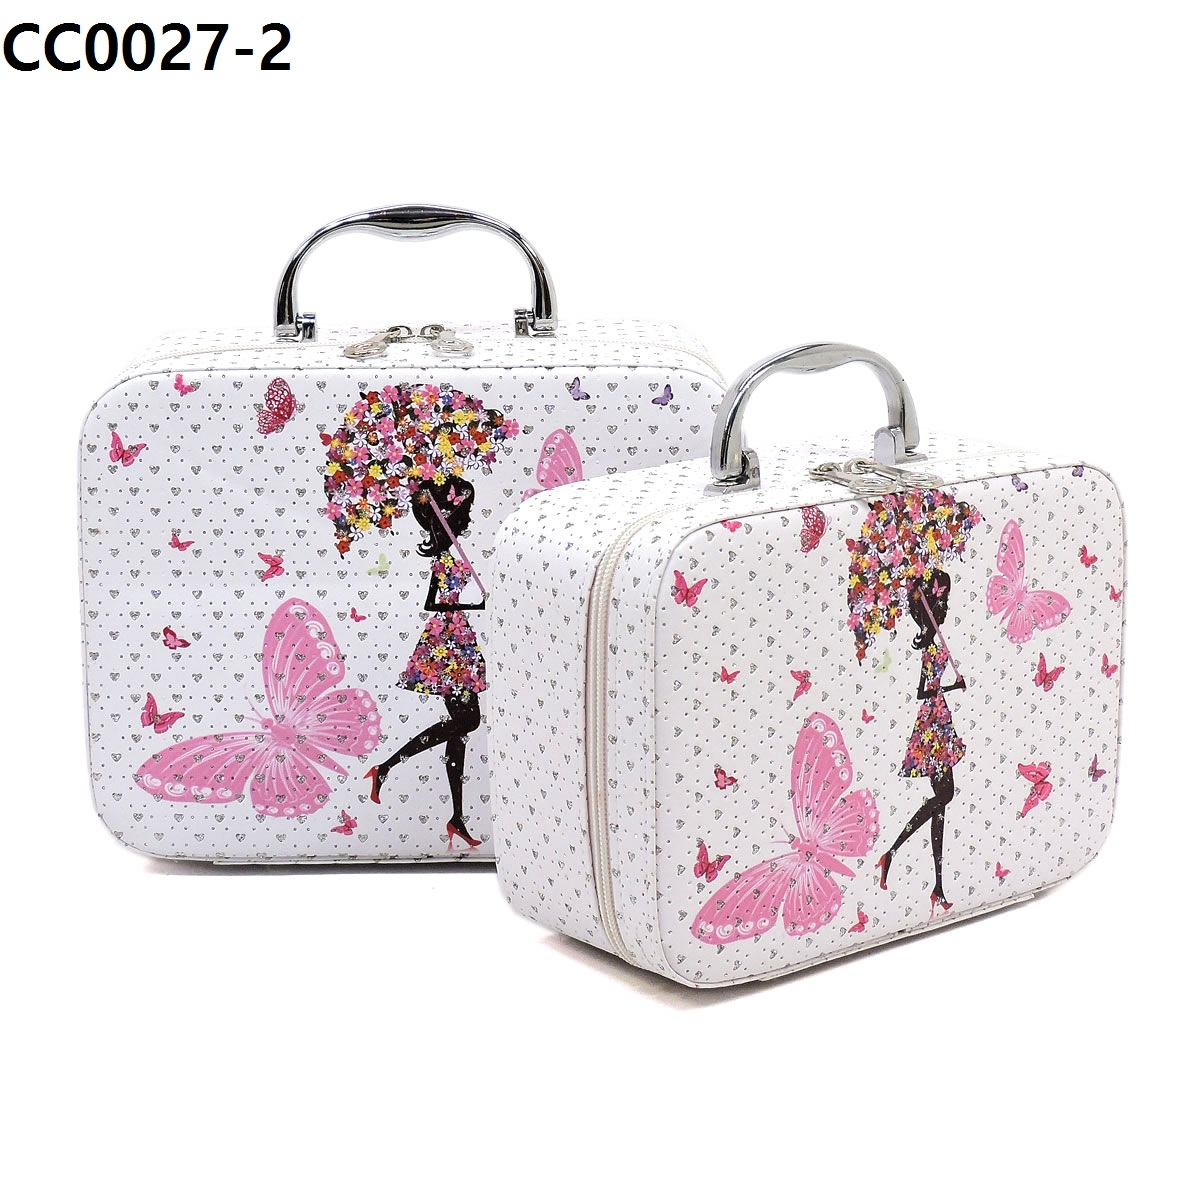 Flower Printed 2 in 1 Cosmetic Bag 2